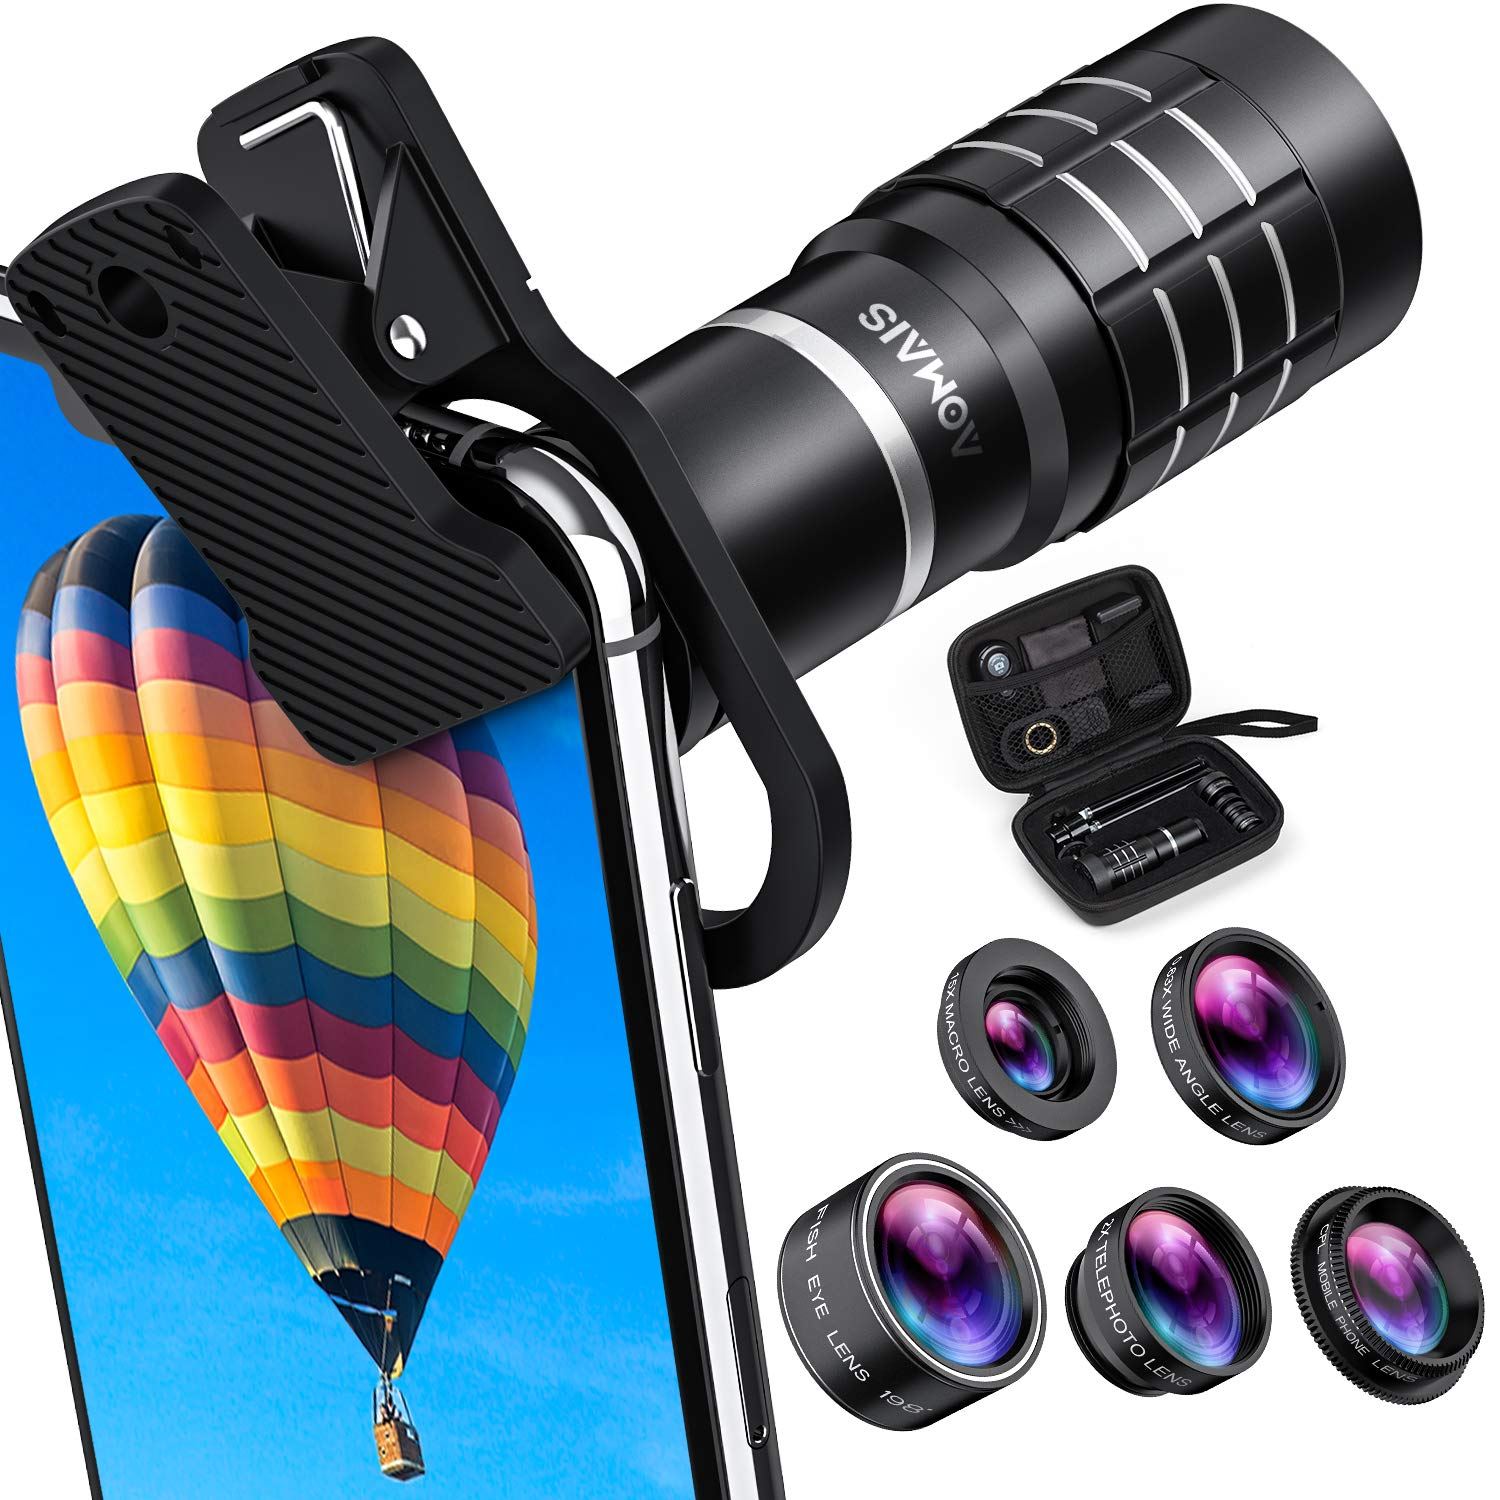 HD Cell Phone Camera Lens Kit 9 in 1, 18X Telephoto Lens, Wide Angle Lens, Macro Lens, Fisheye Lens, 2X Telephoto Lens, CPL in Travel Case, Compatible with iPhone Max X XS 8 7 6 Plus, Samsung & More by AOMAIS